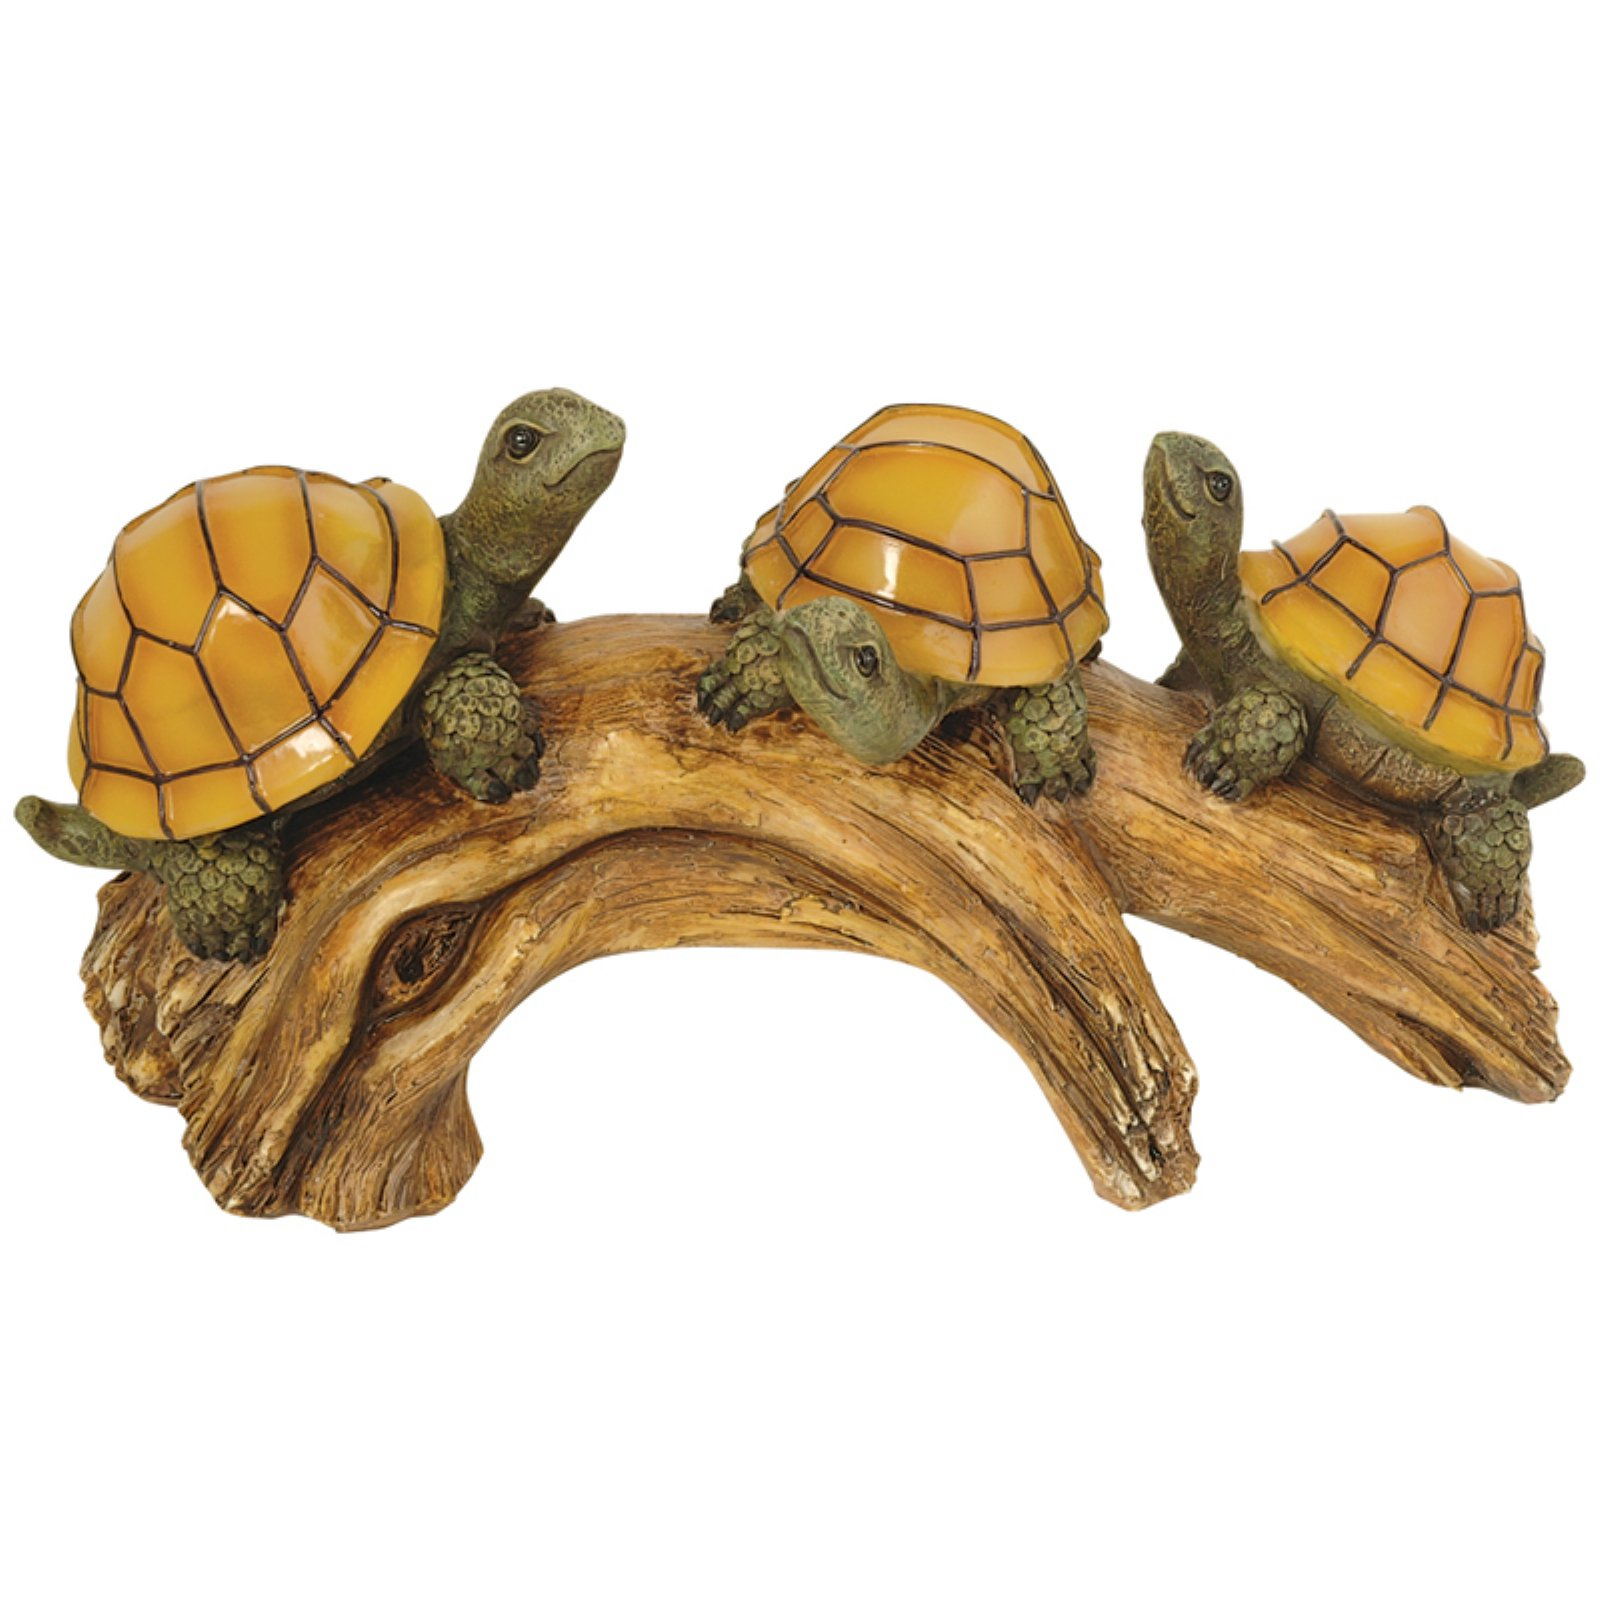 Moonrays Solar Powered Turtles on Log with LED Glowing Shells